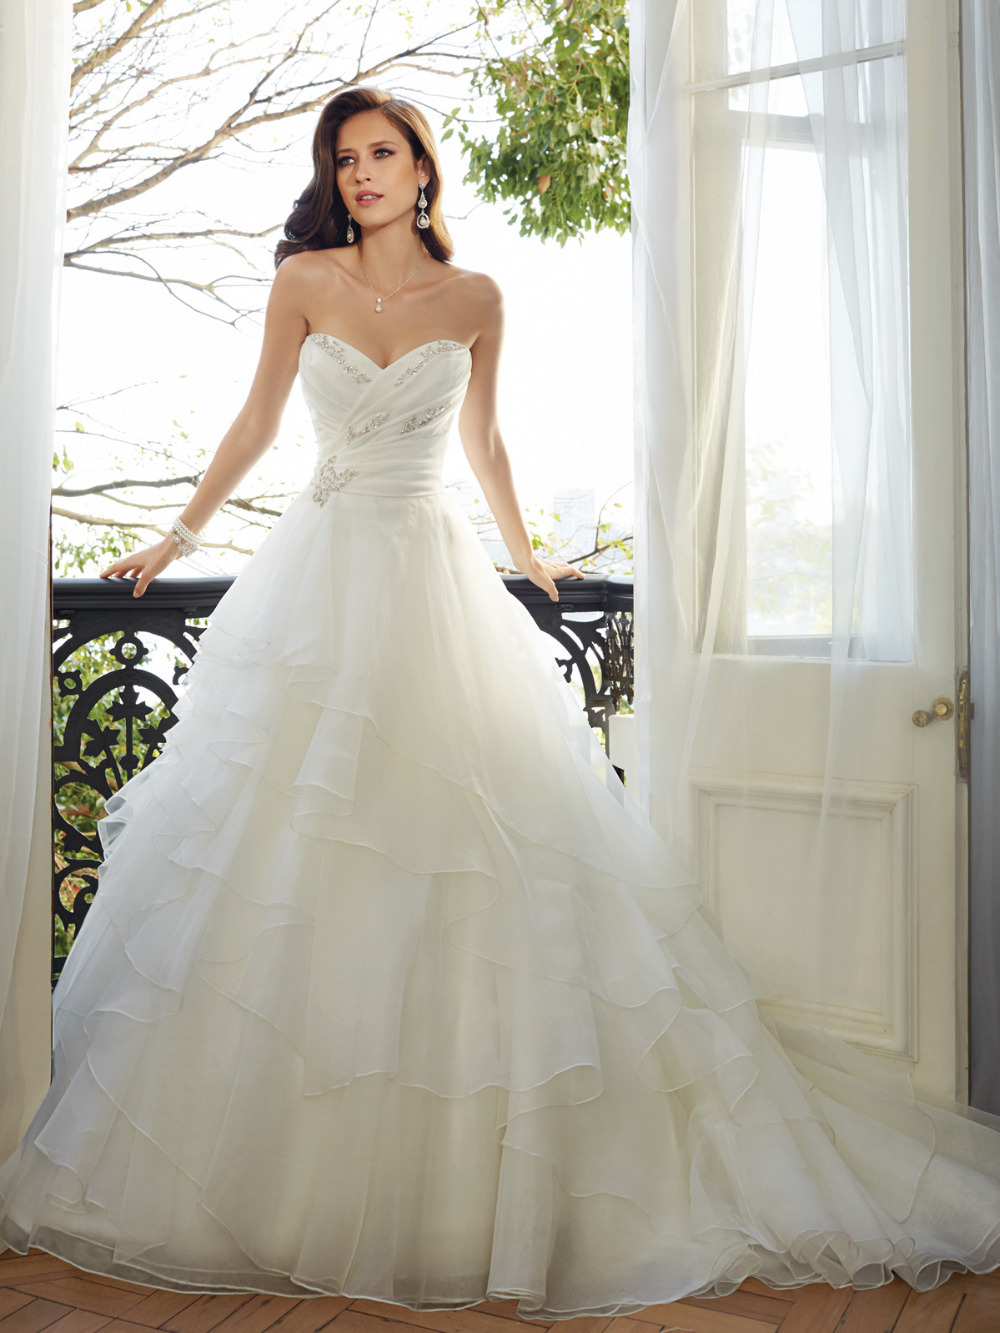 Organza simple elegant custom made wedding dresses 2015 for Custom wedding dress online